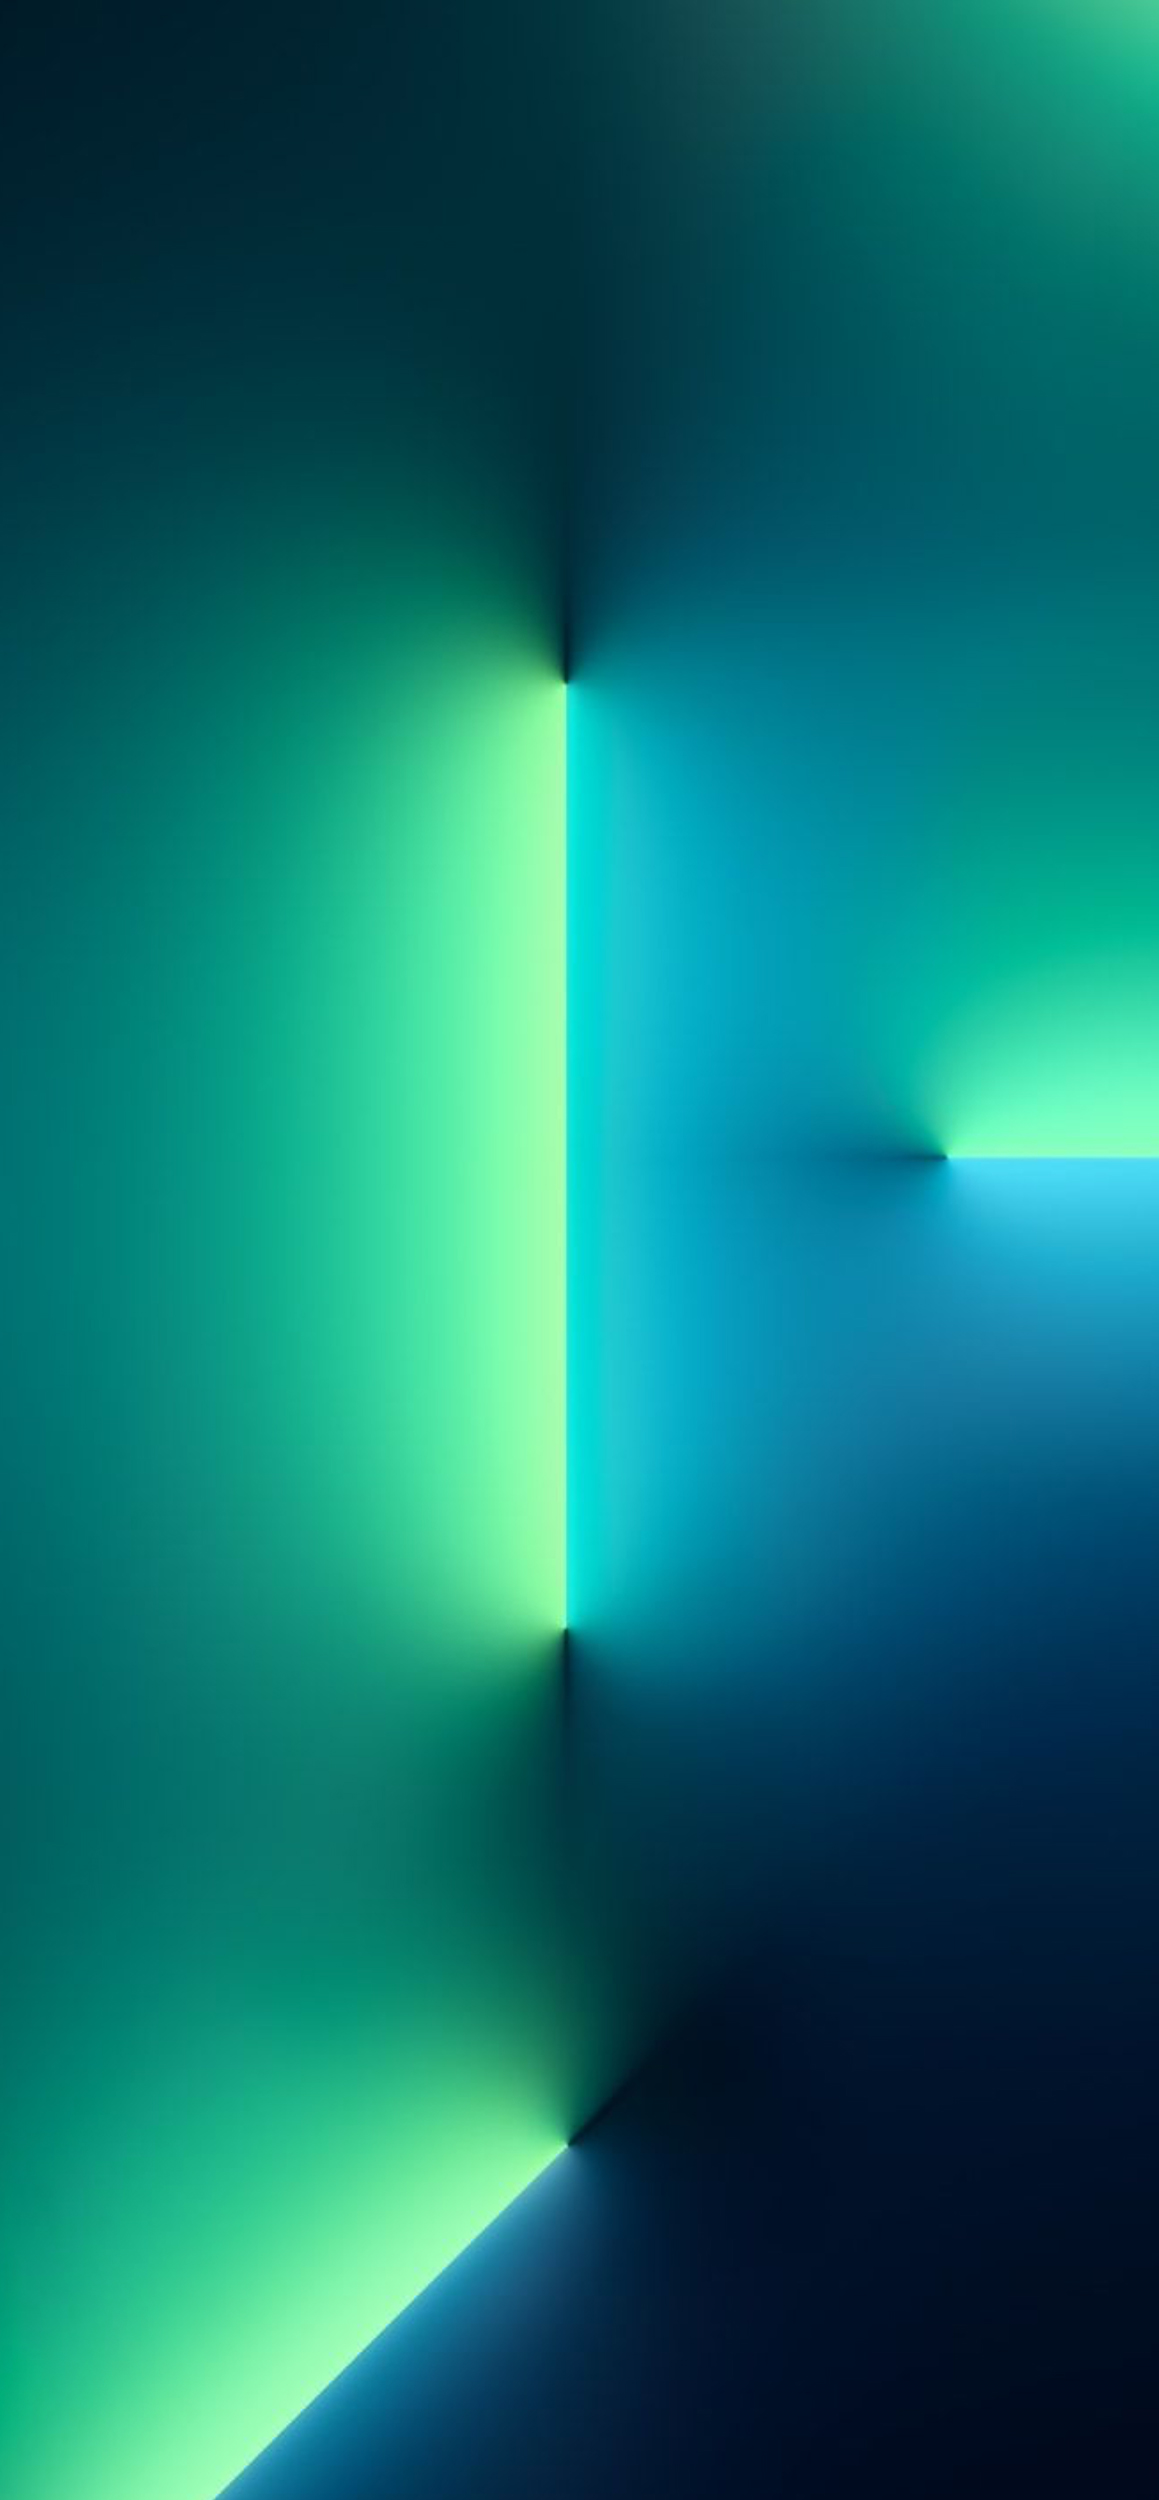 IPhone 13 Pro Wallpaper In Green And Blue Lights